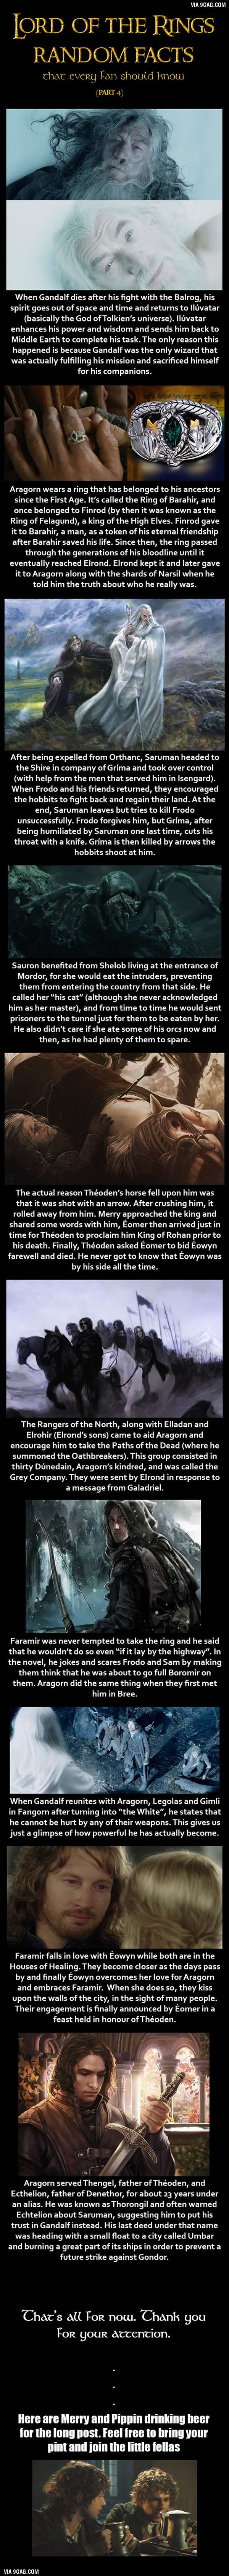 LORD OF THE RINGS Facts that Every Fan Should Know5